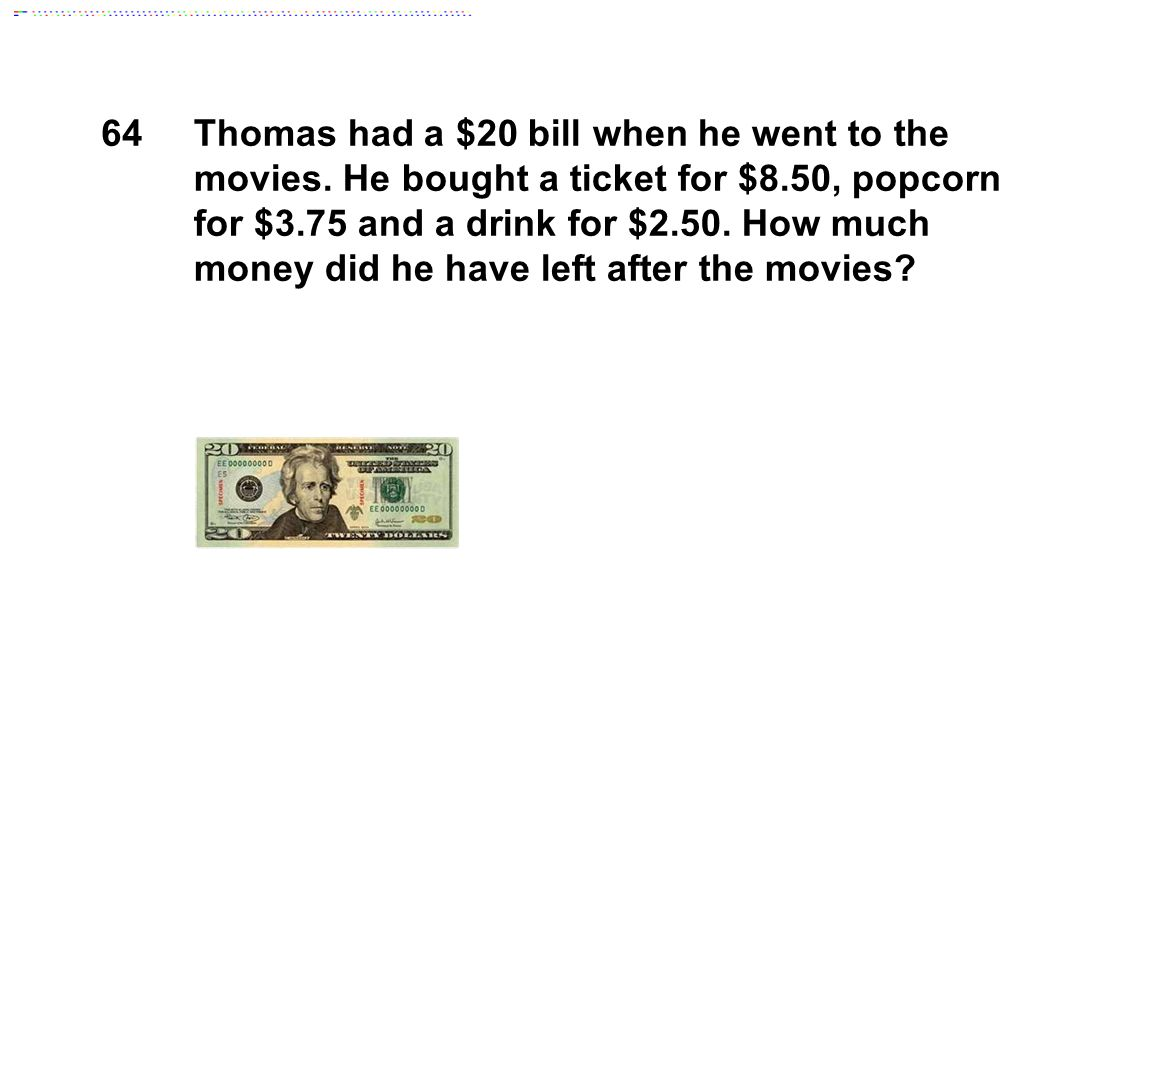 64Thomas had a $20 bill when he went to the movies.